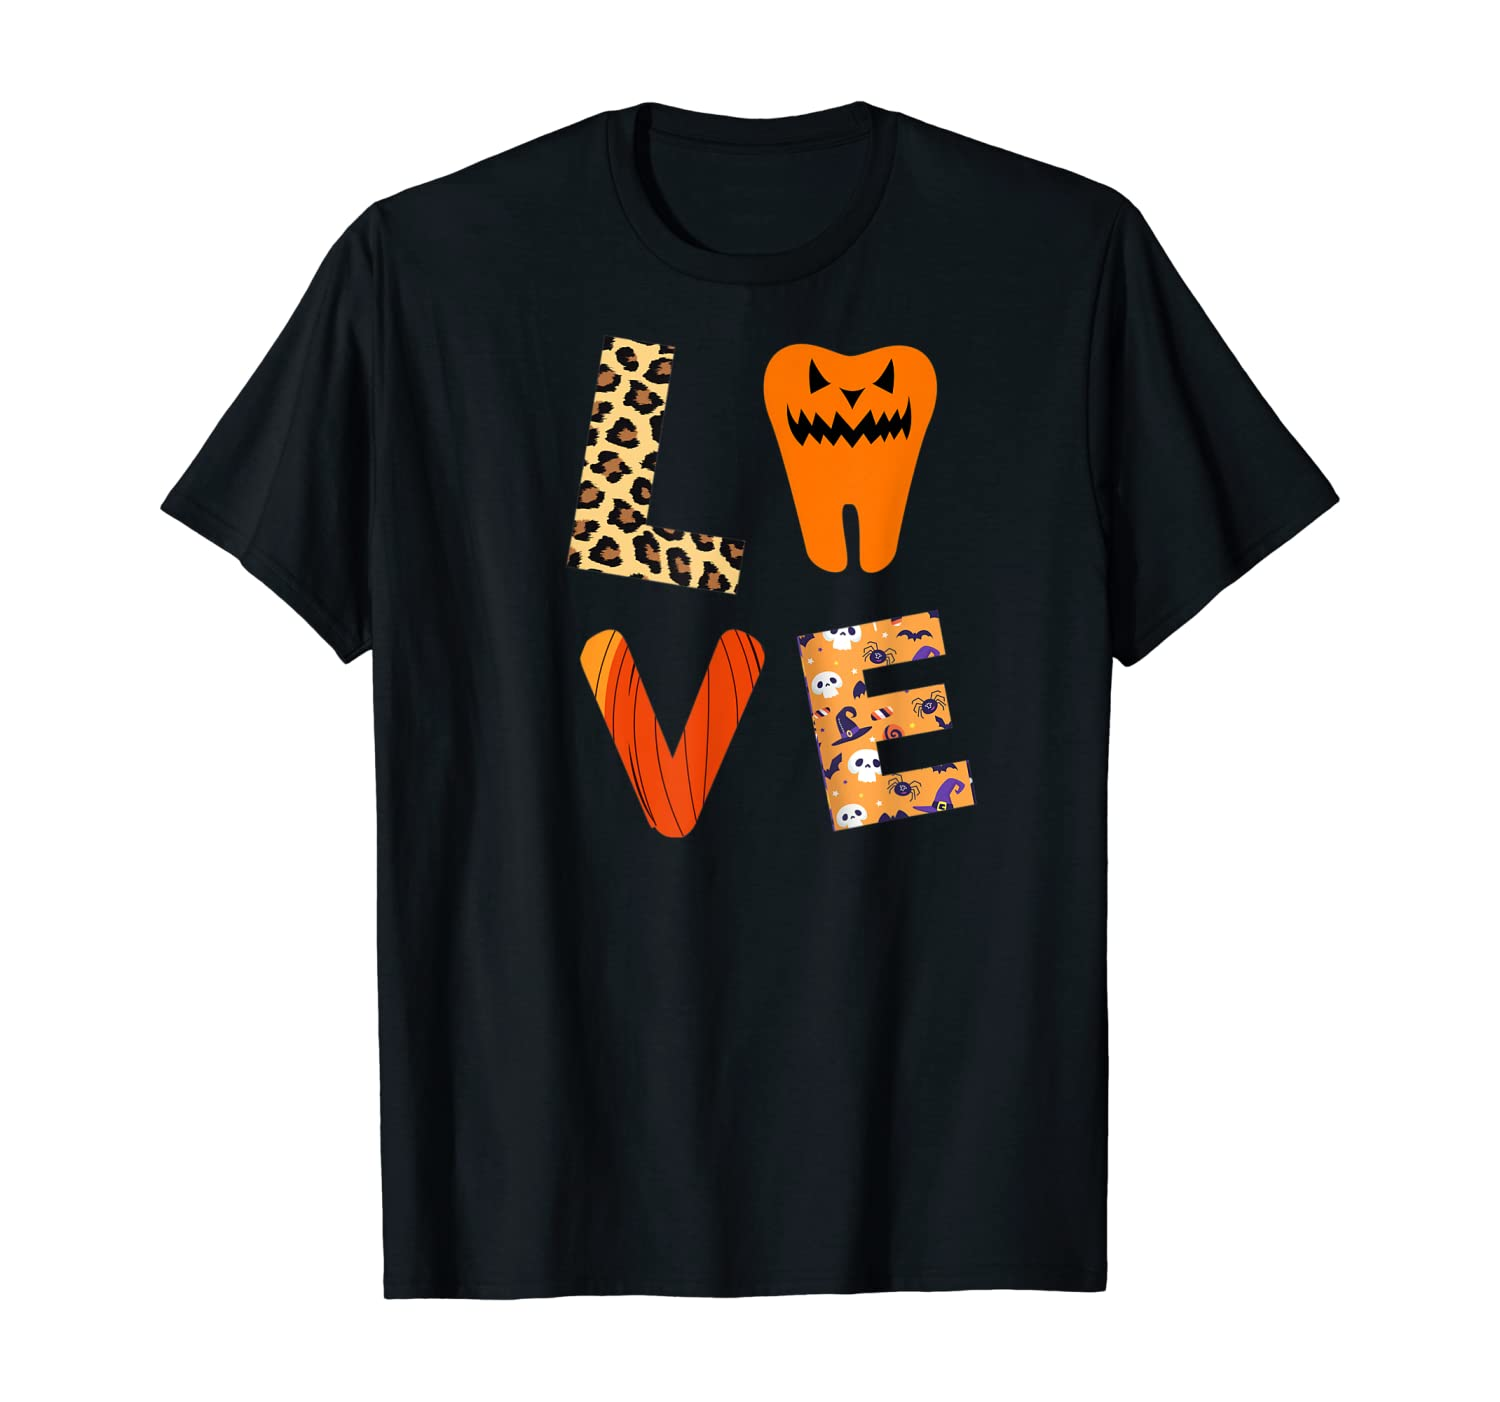 Love Dentist, Dental Assistant Leopard Plaid Halloween Ghost T-Shirt